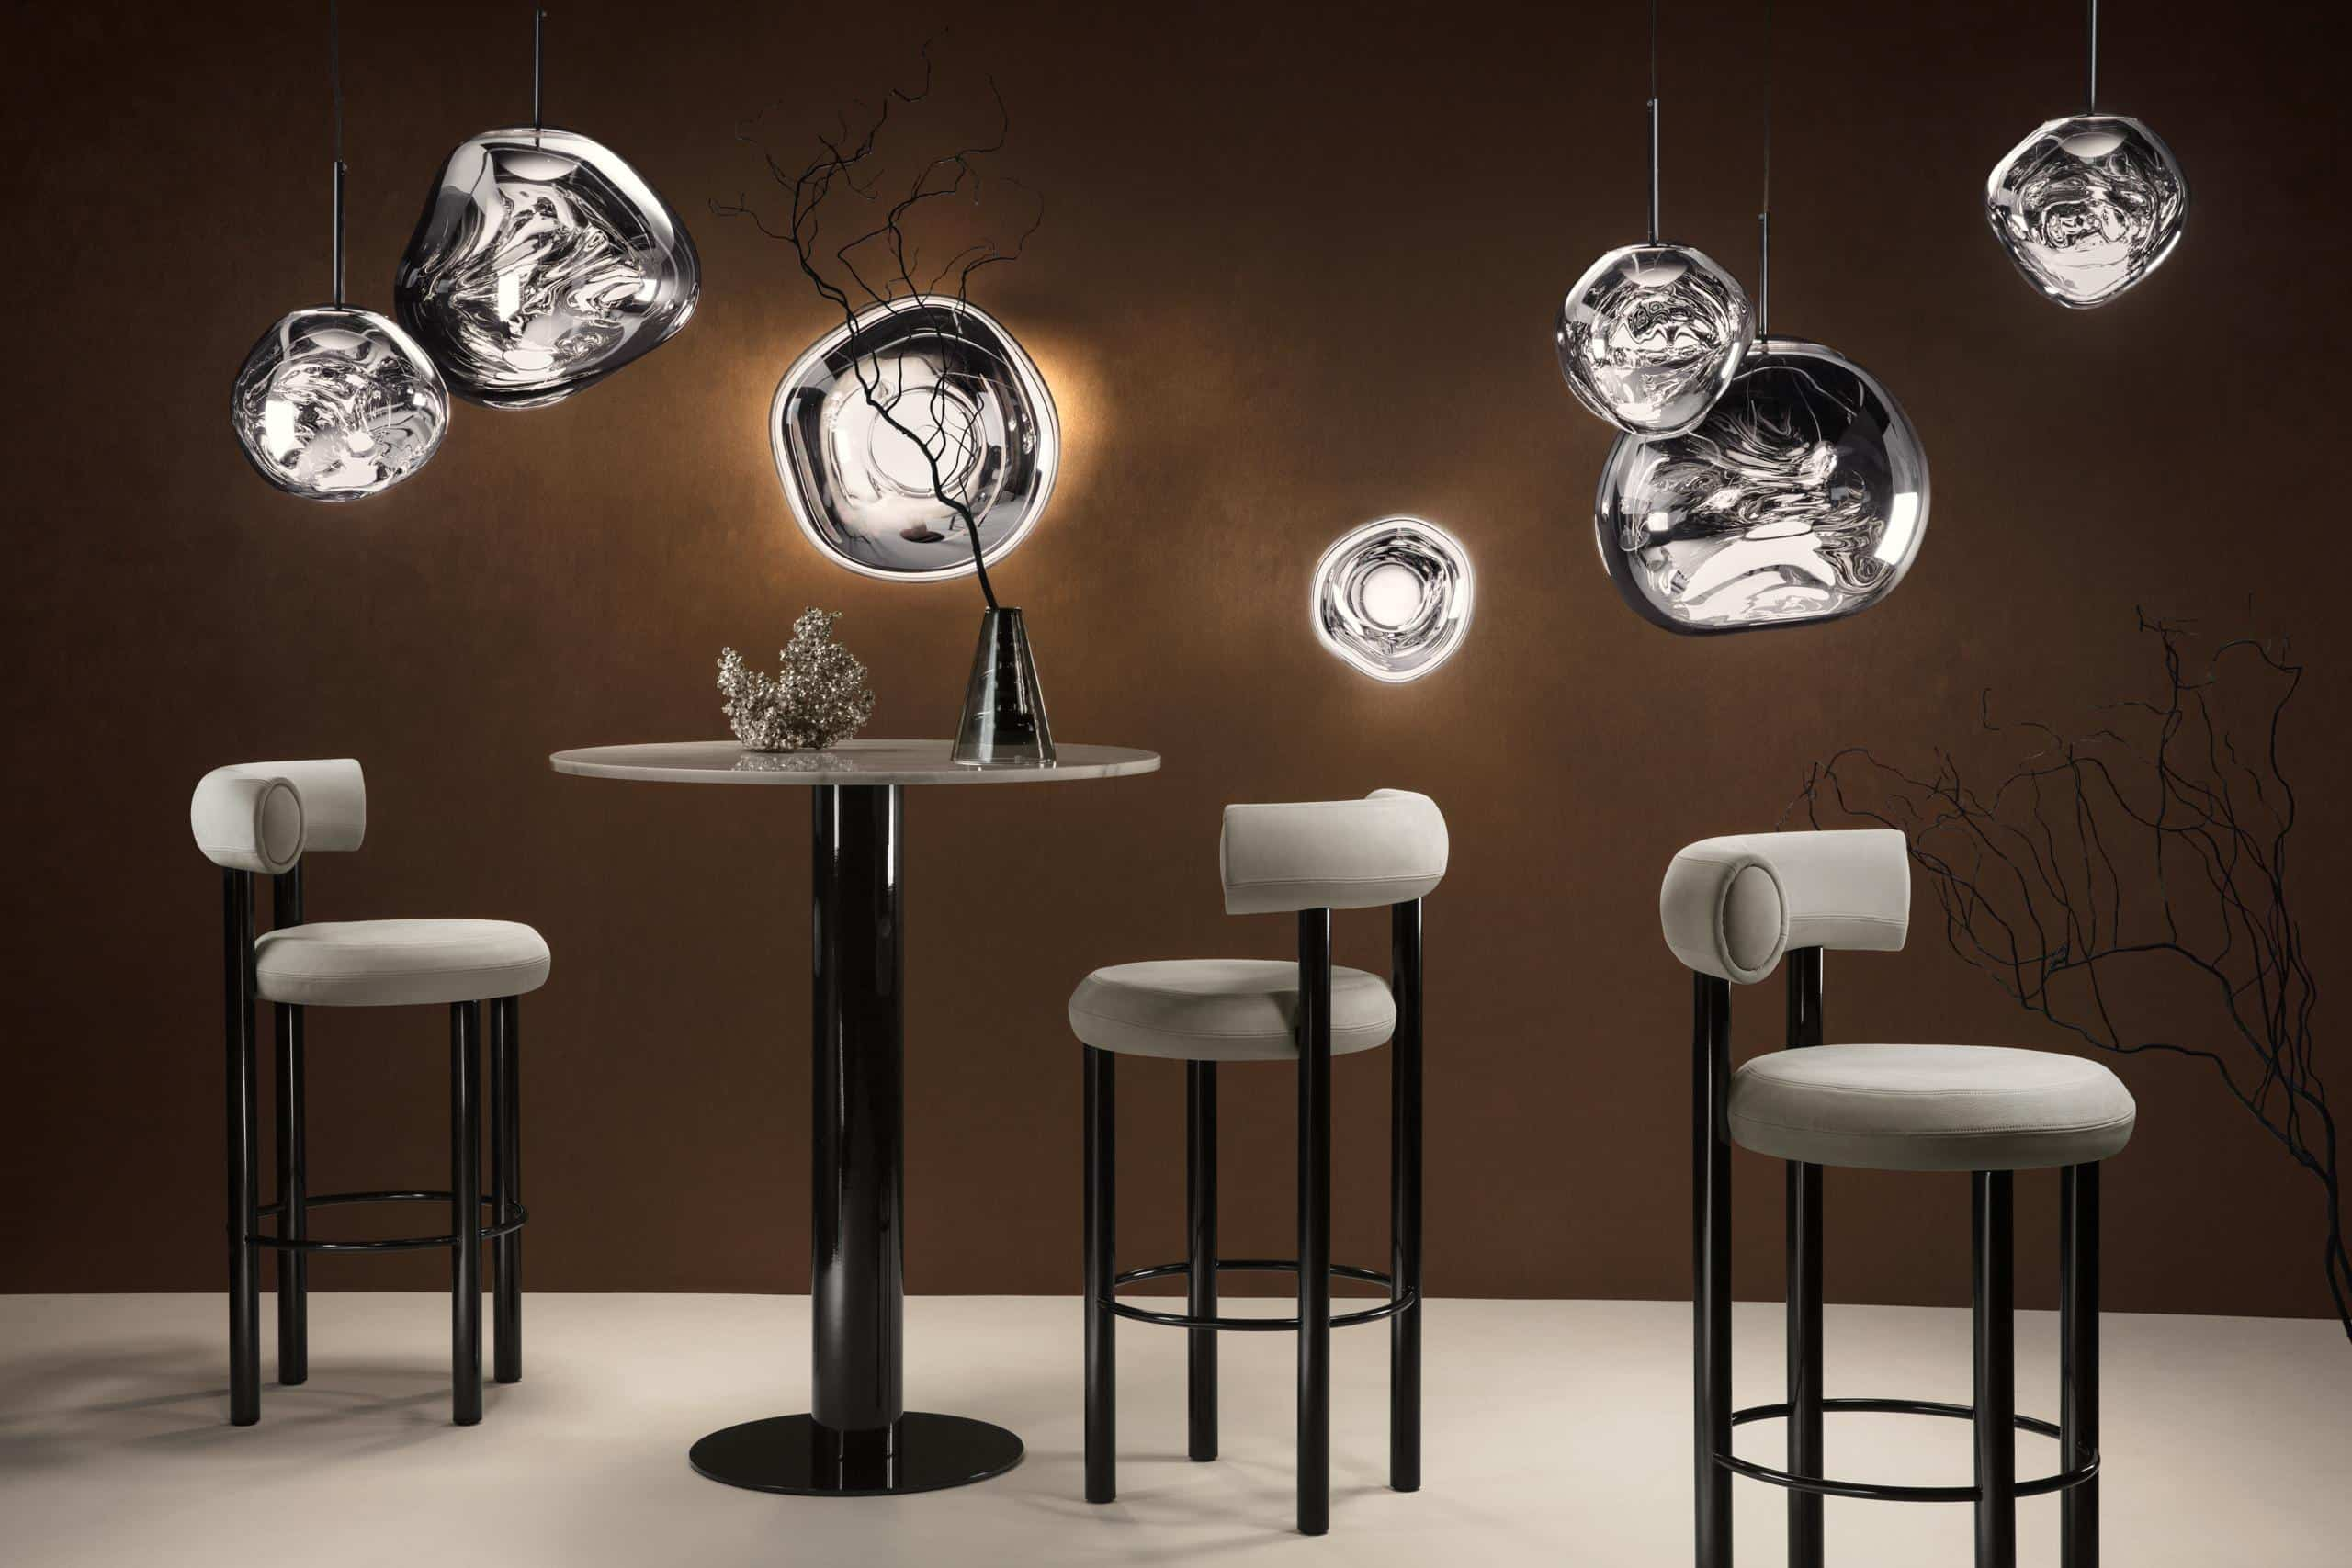 The Manzoni by Tom Dixon